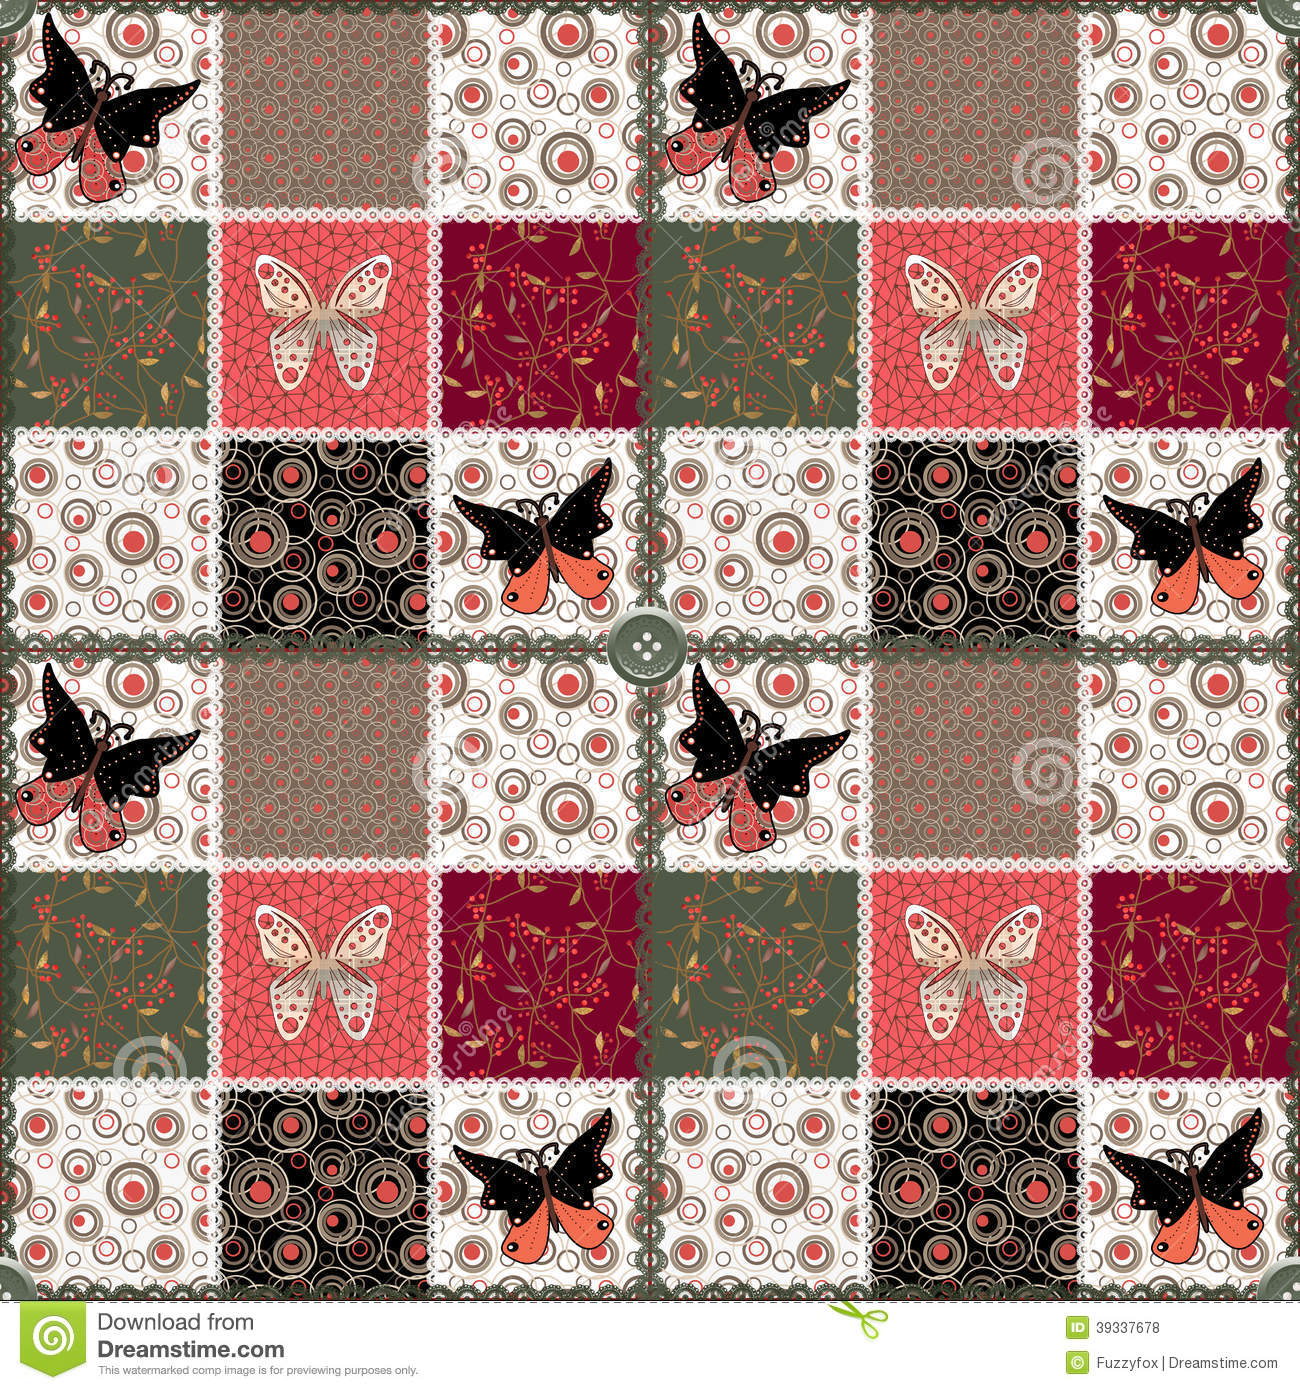 mod le floral sans couture de patchwork avec des papillons illustration stock image 39337678. Black Bedroom Furniture Sets. Home Design Ideas